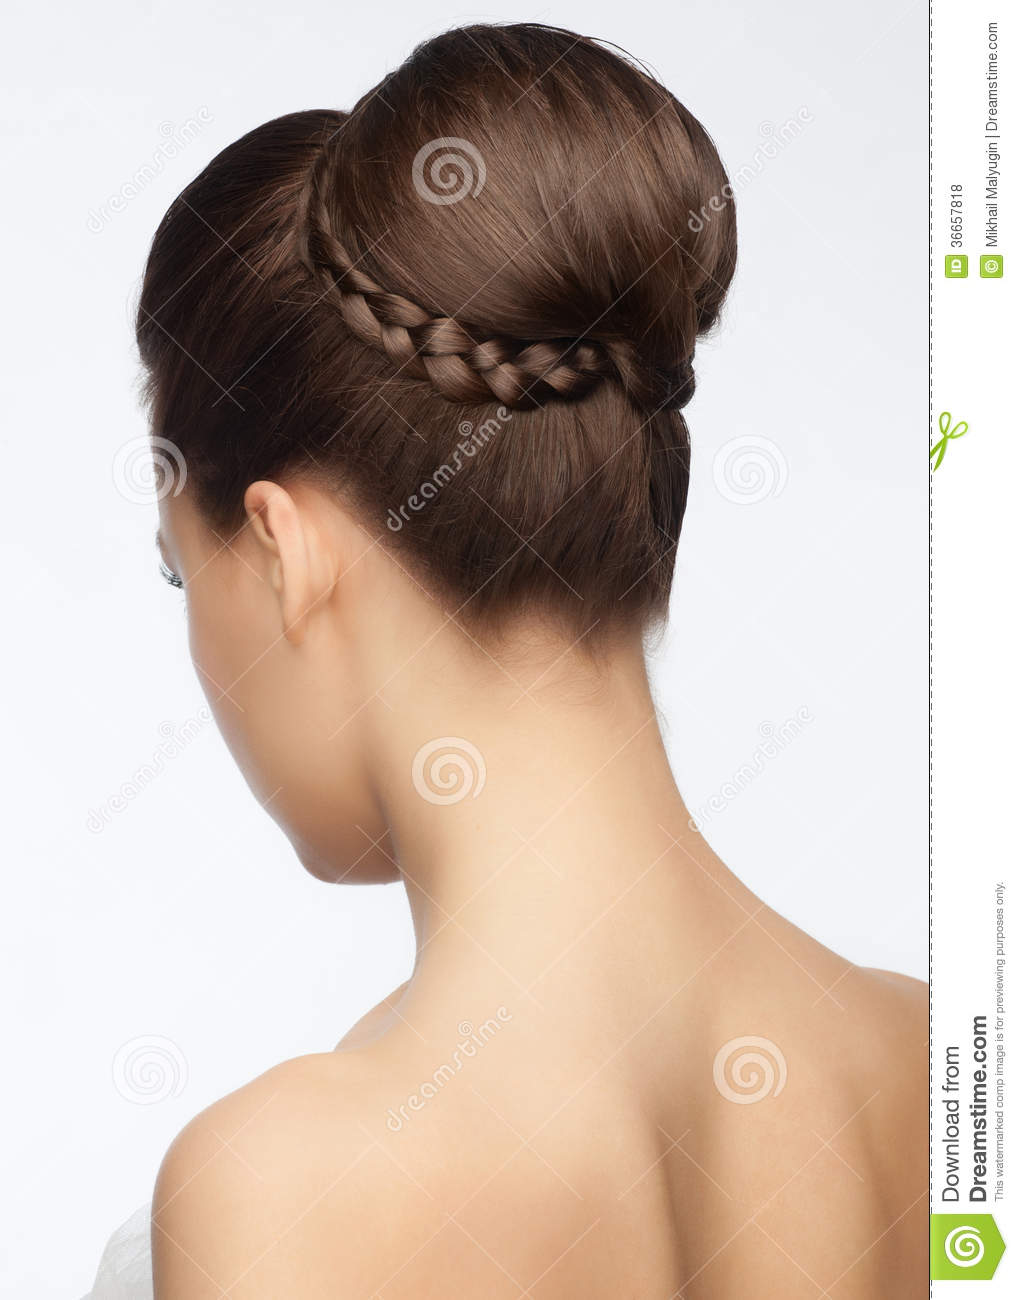 bridal hairstyle stock photo. image of gorgeous, attractive - 36657818